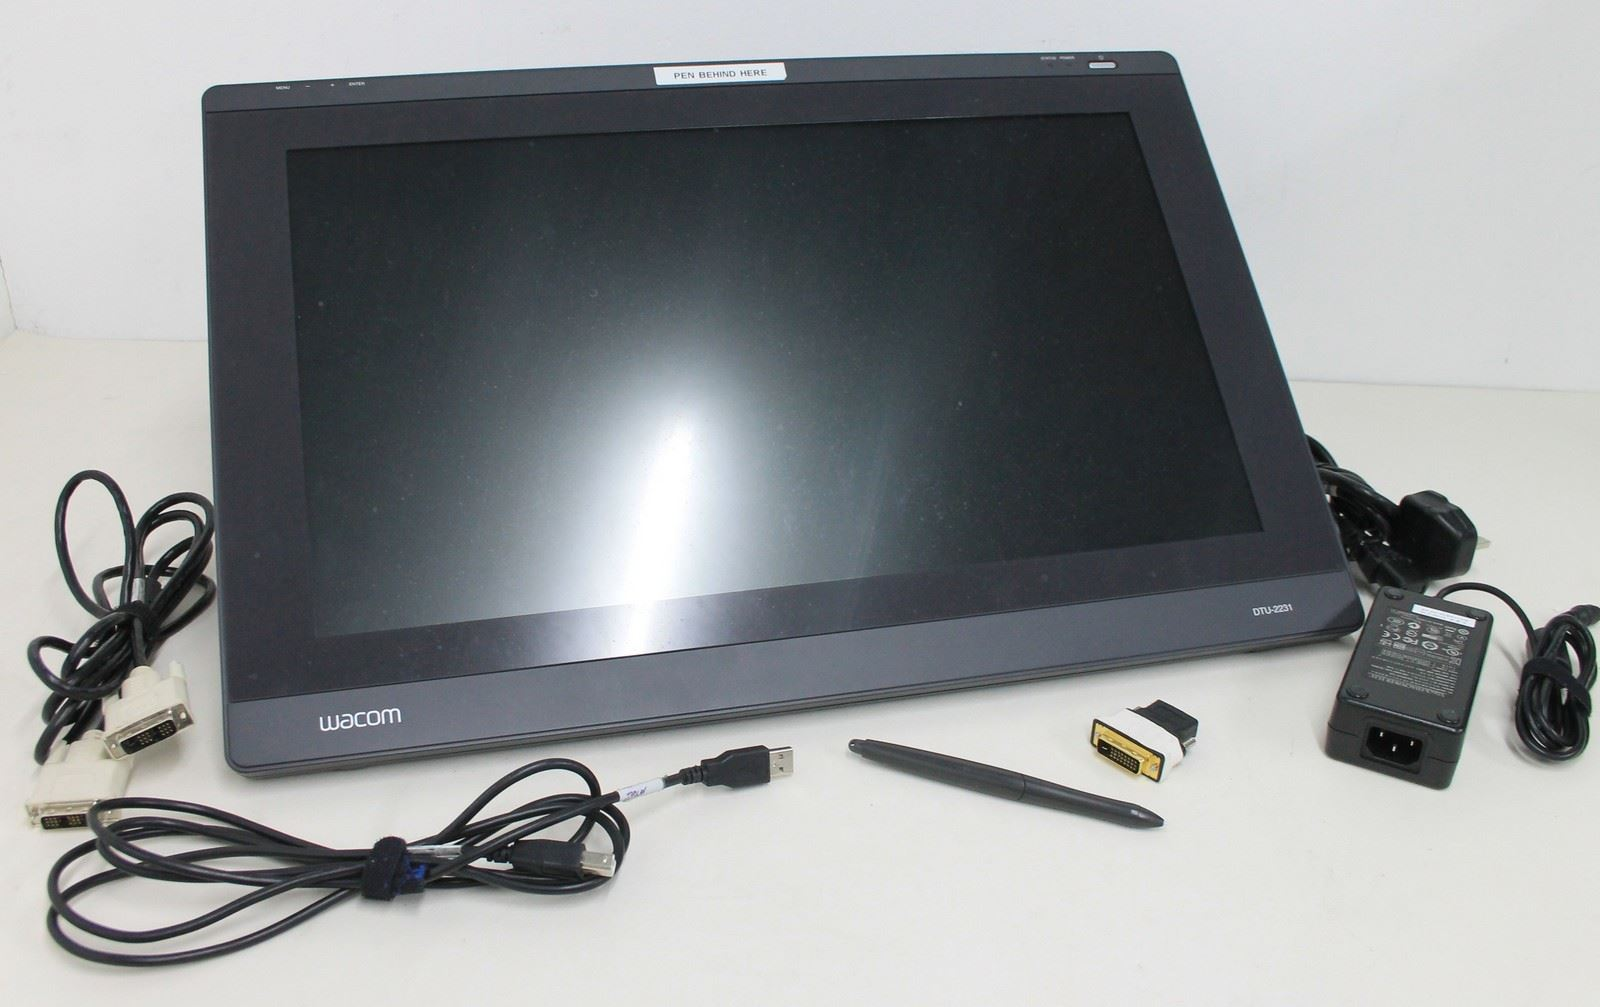 wacom_tablet_large.jpg